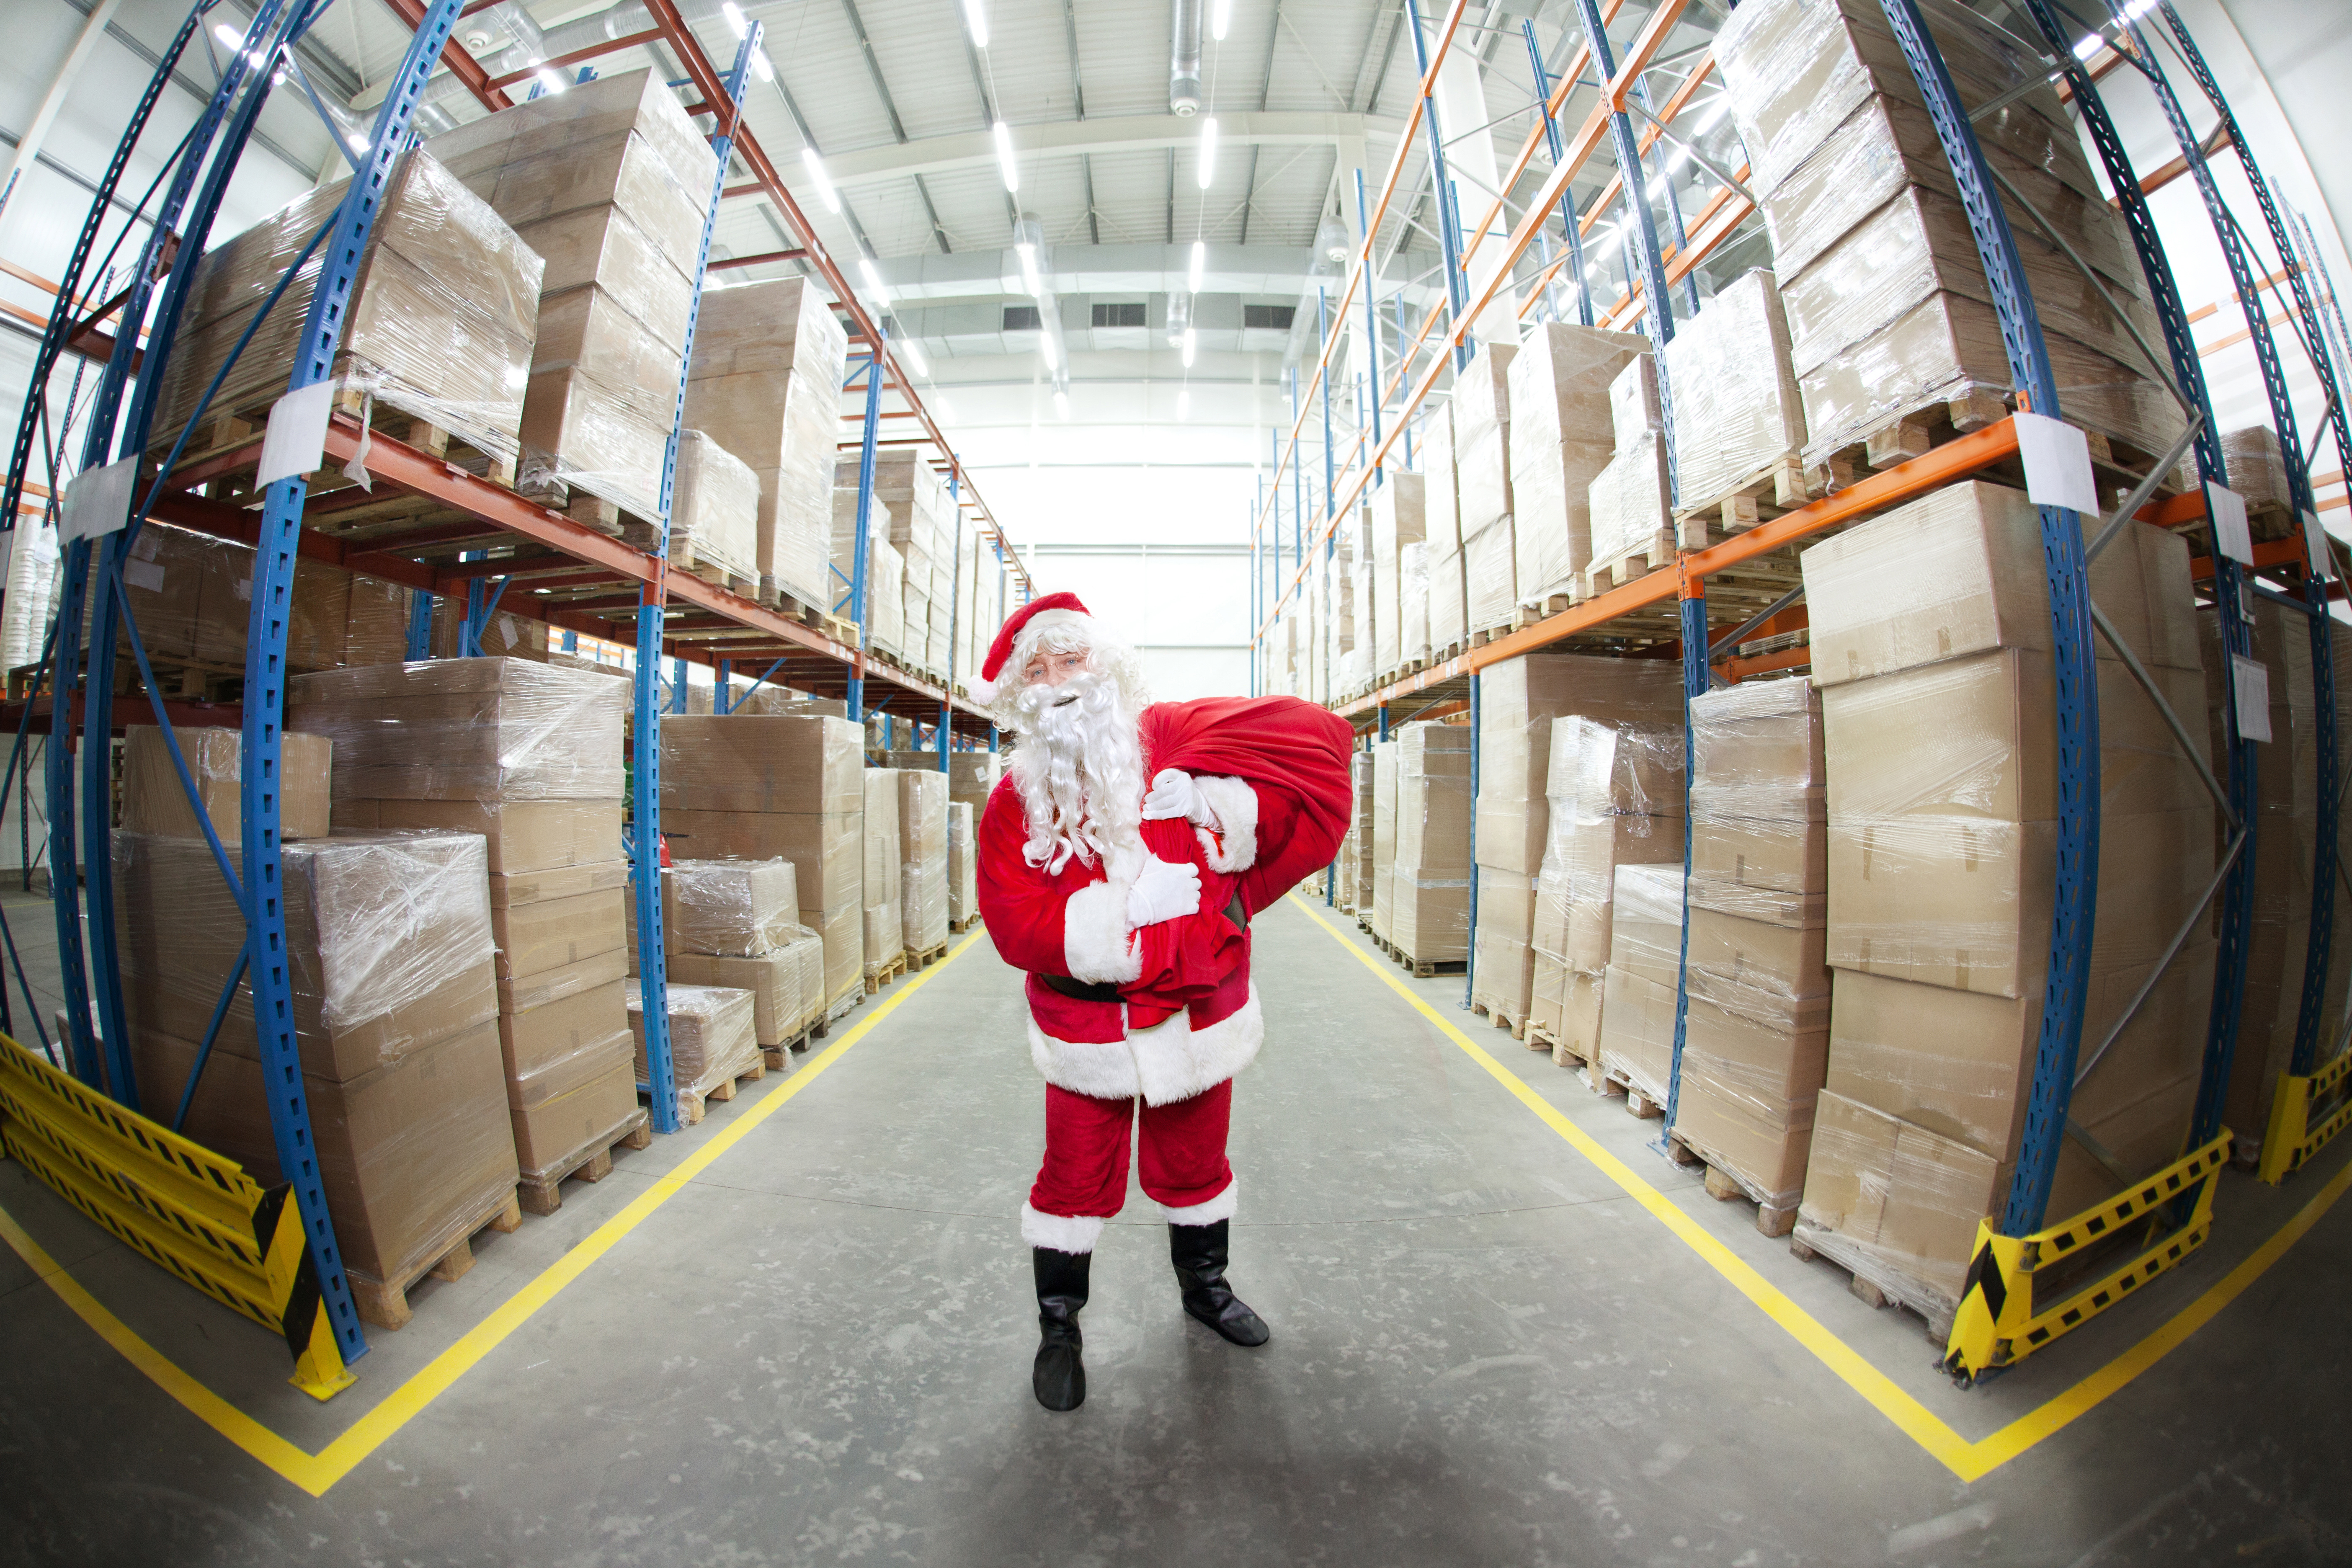 Santa's supply chain is actually a possibility, as we discover in this piece